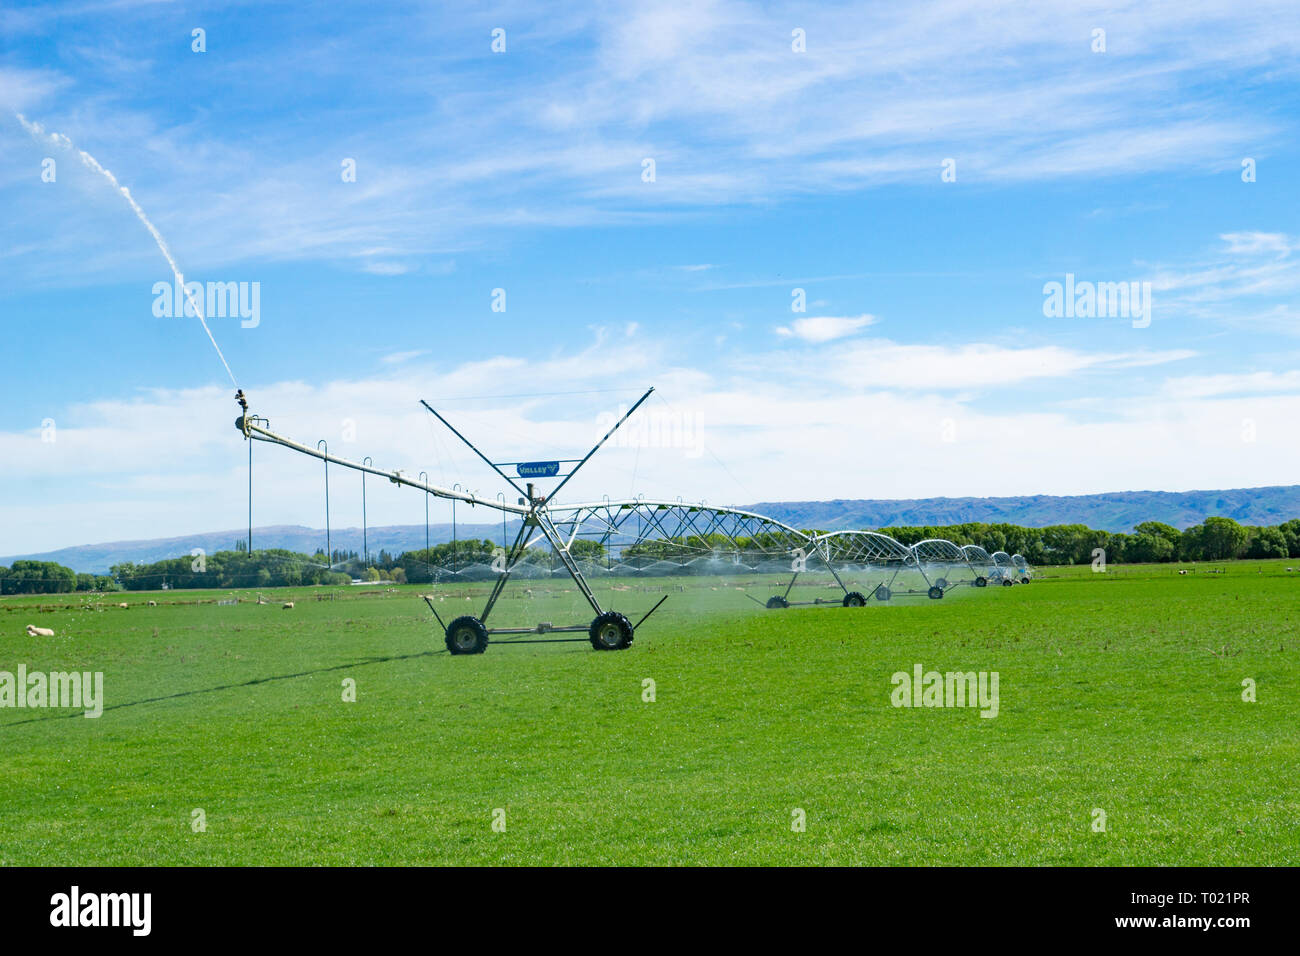 Large centre pivot irrigation system running on a farm in Central Otago, New Zealand providing water distribution for farmland pasture management - Stock Image